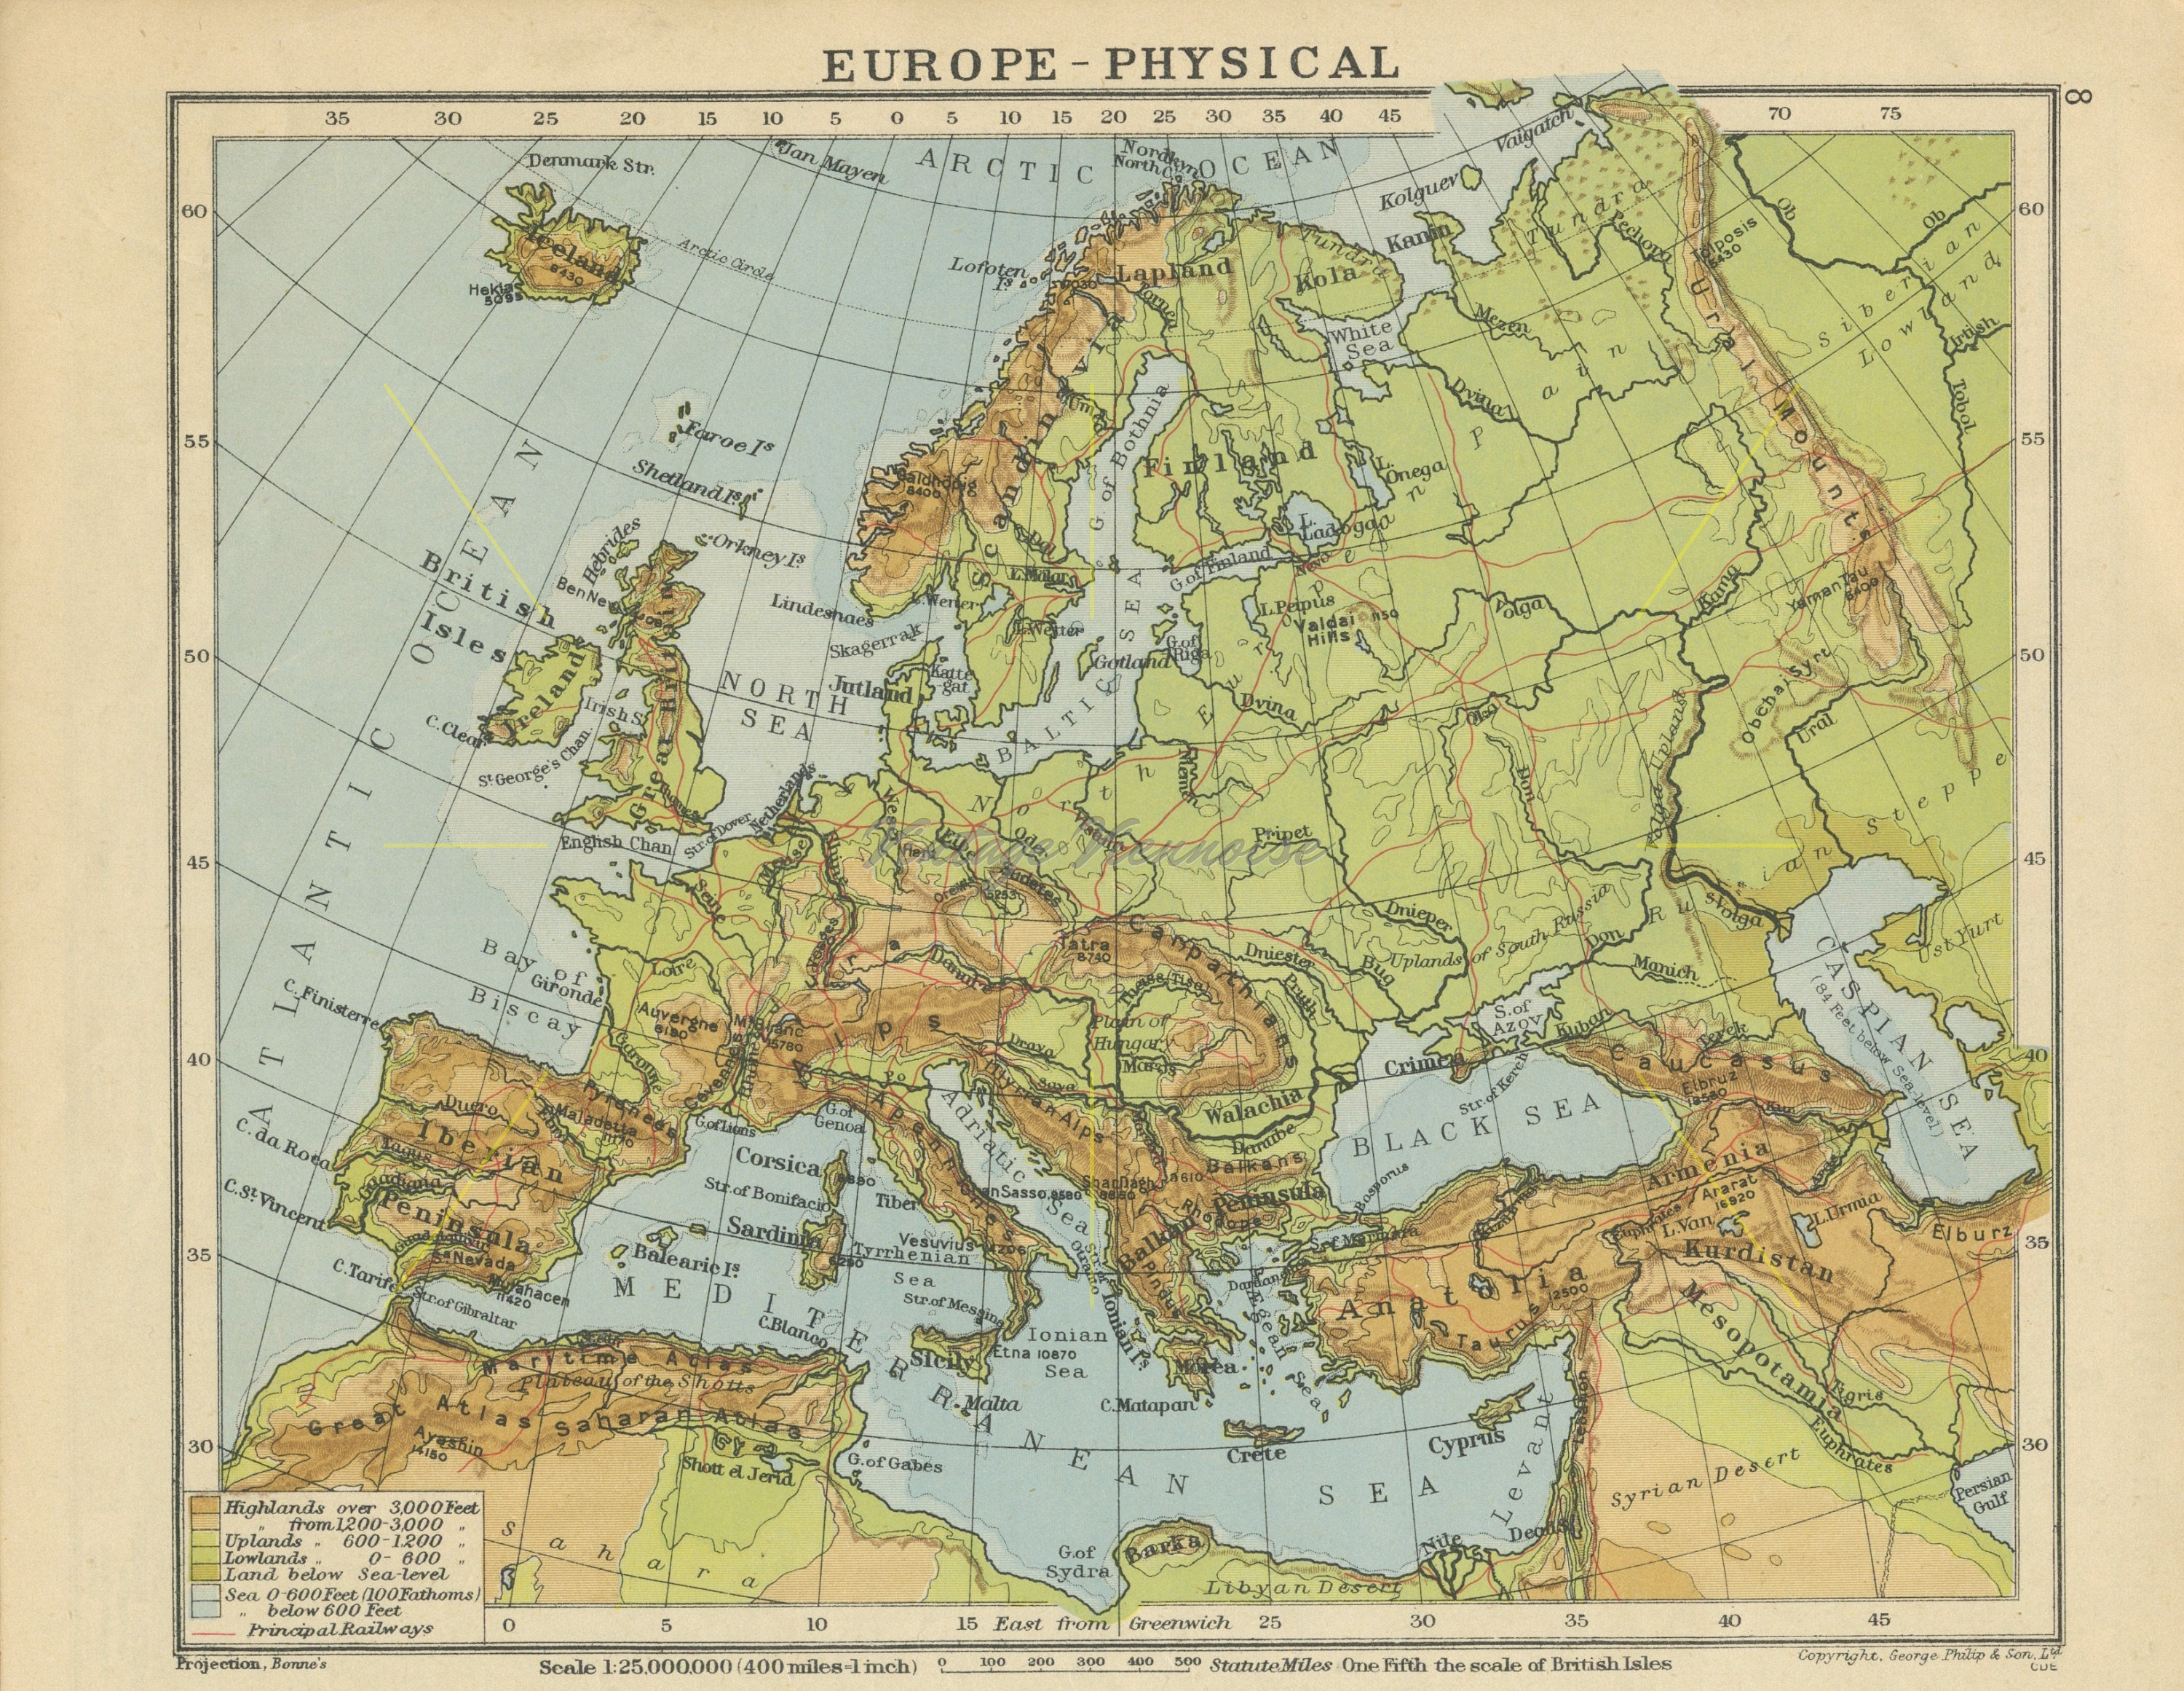 Map Of Europe With Scale.Vintage Europe Map Europe Print Europe Gift Europe Decor Etsy